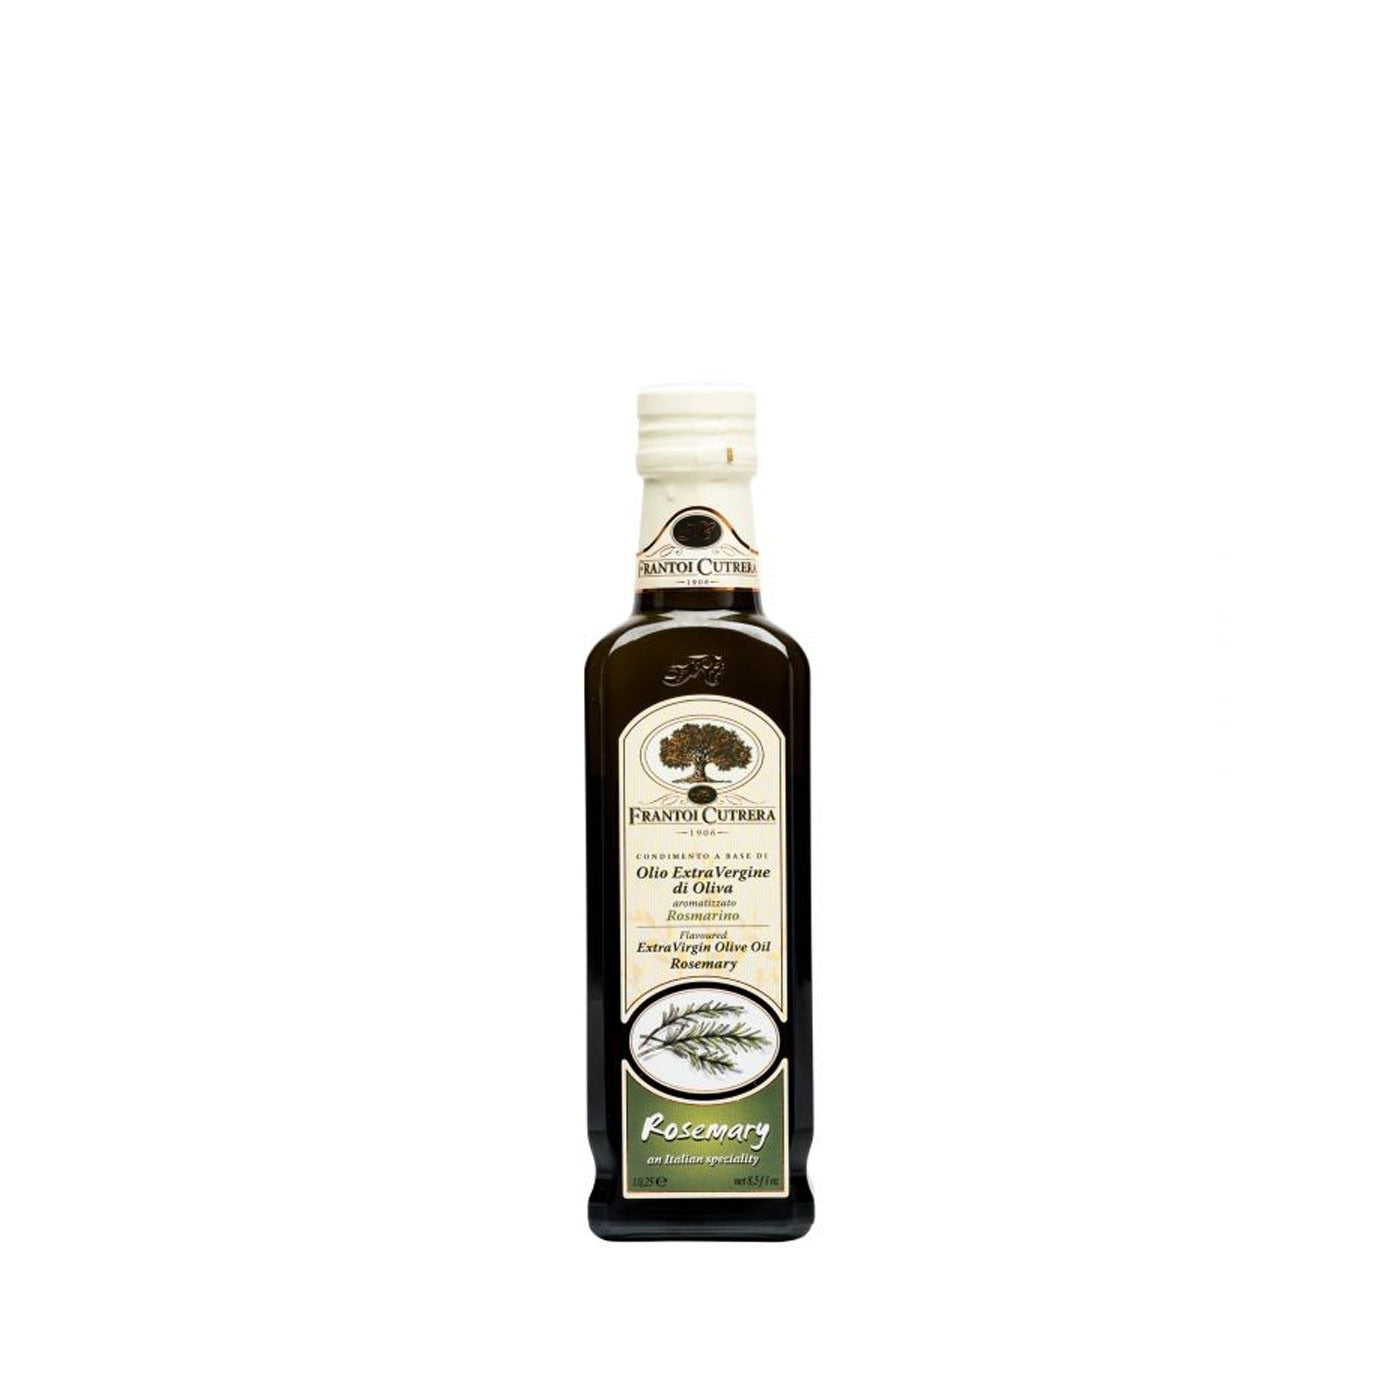 Frantoi Cutrera Extra virgin olive oil rosemary flavor 250ml, 8.5oz